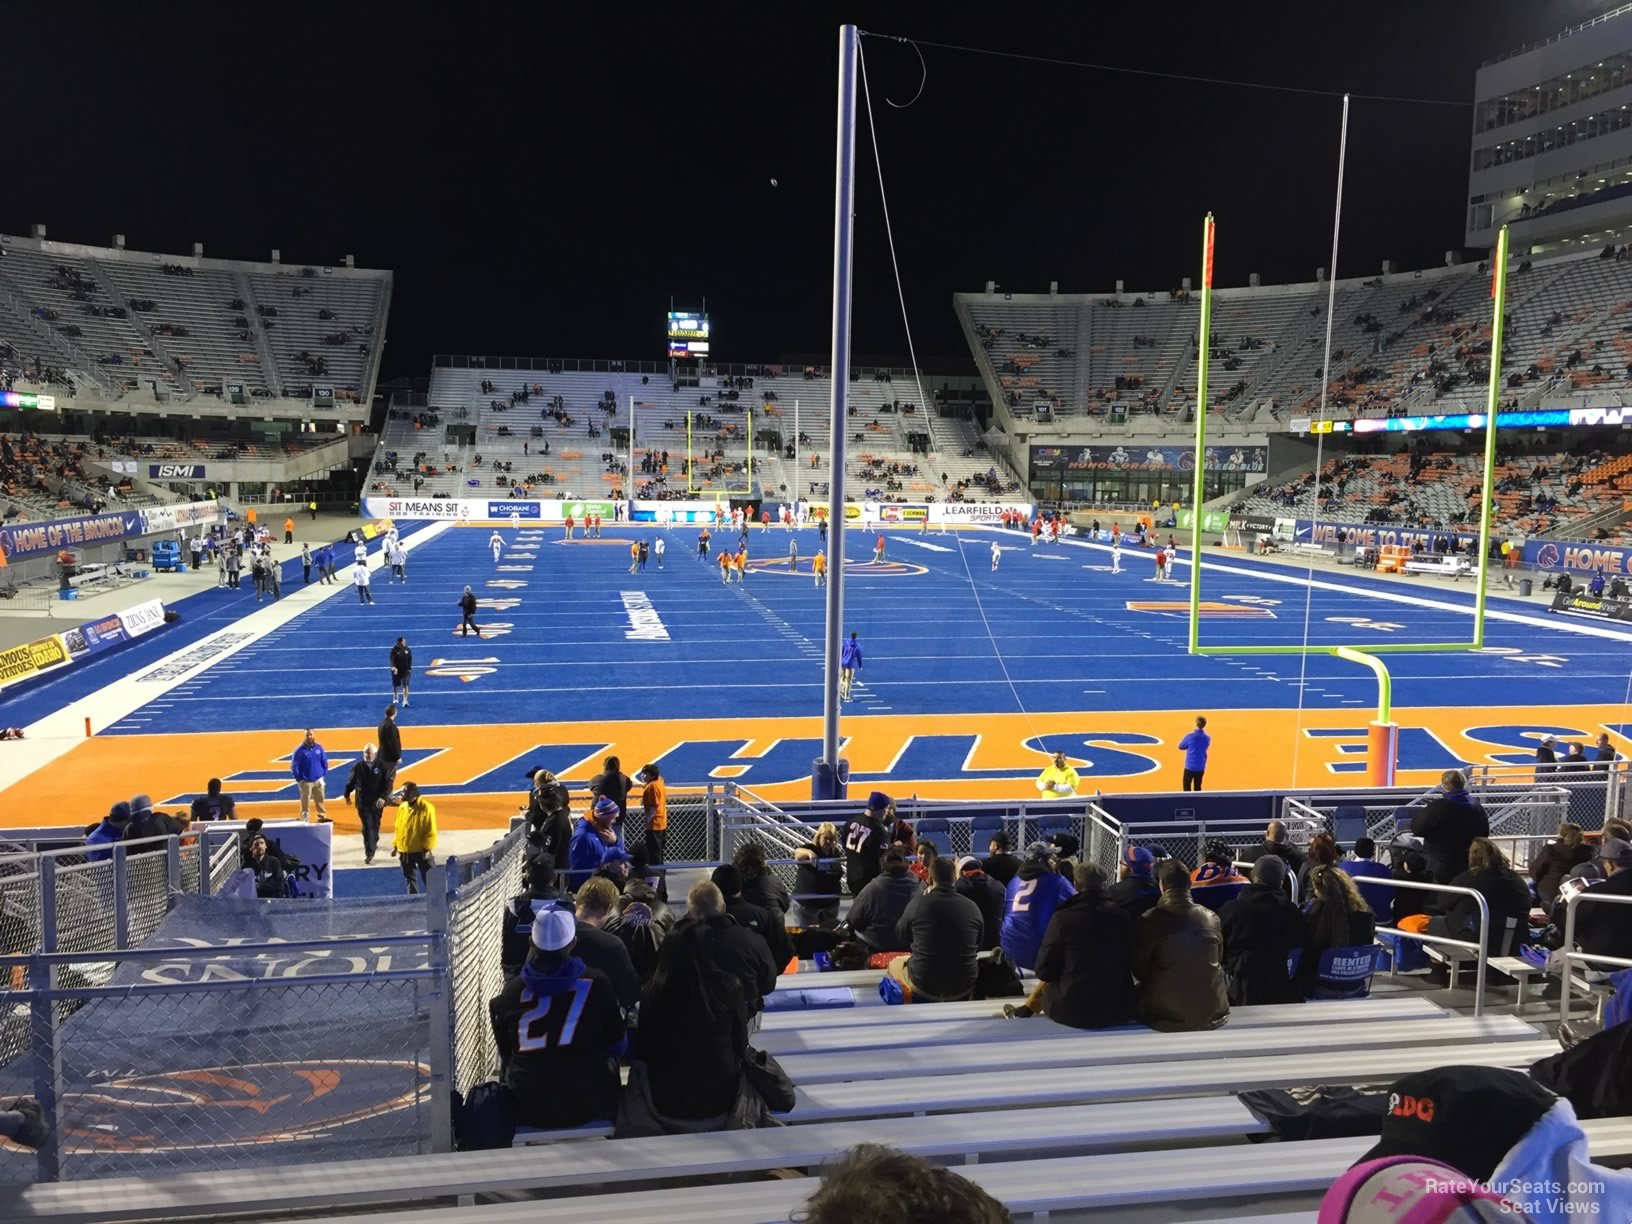 Seat View For Bronco Stadium North End Zone